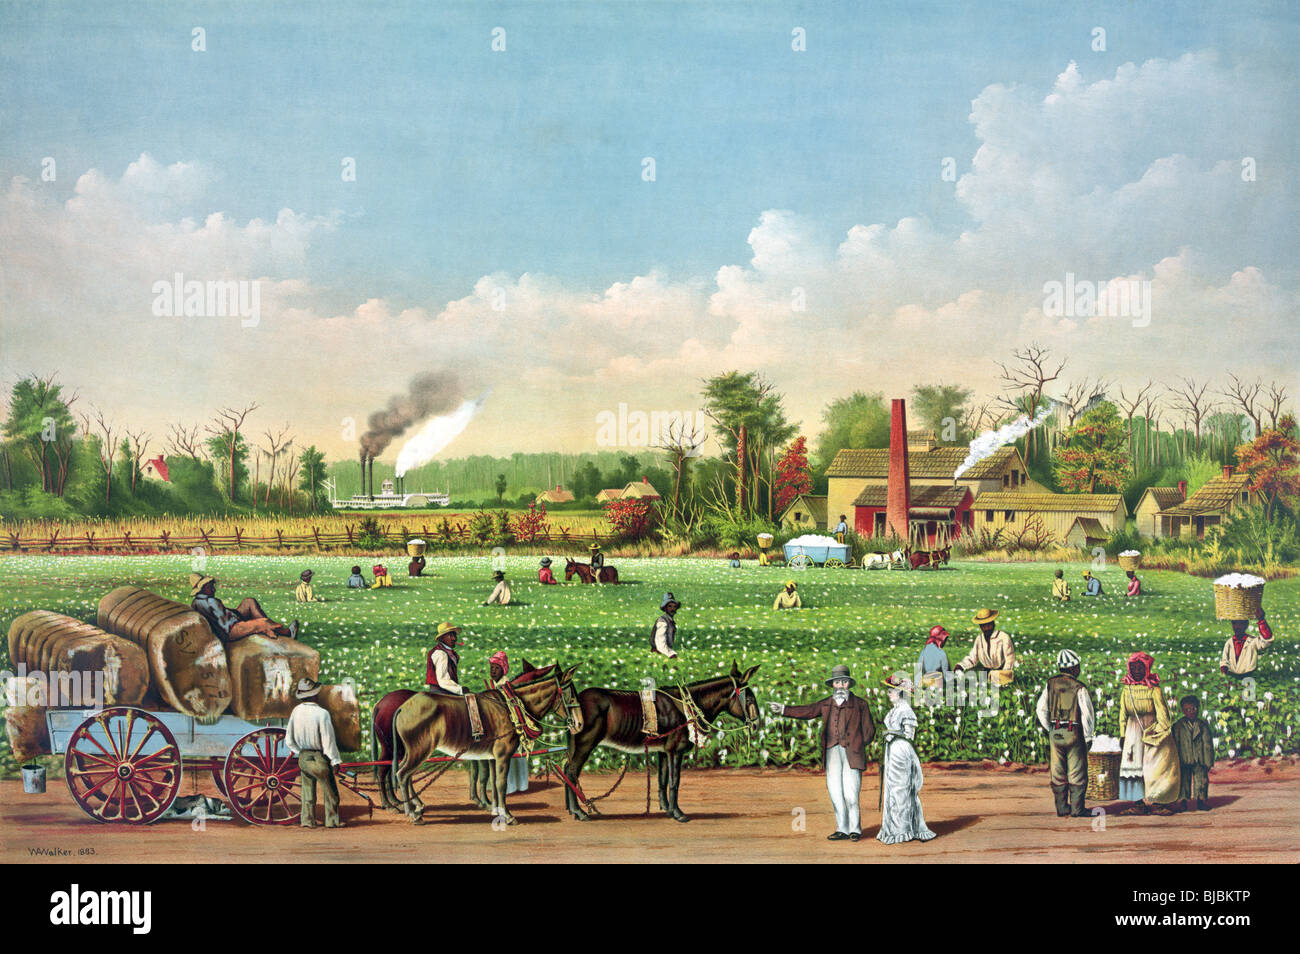 Lithograph colour print circa 1884 of a 19th century cotton plantation on the Mississippi River. - Stock Image